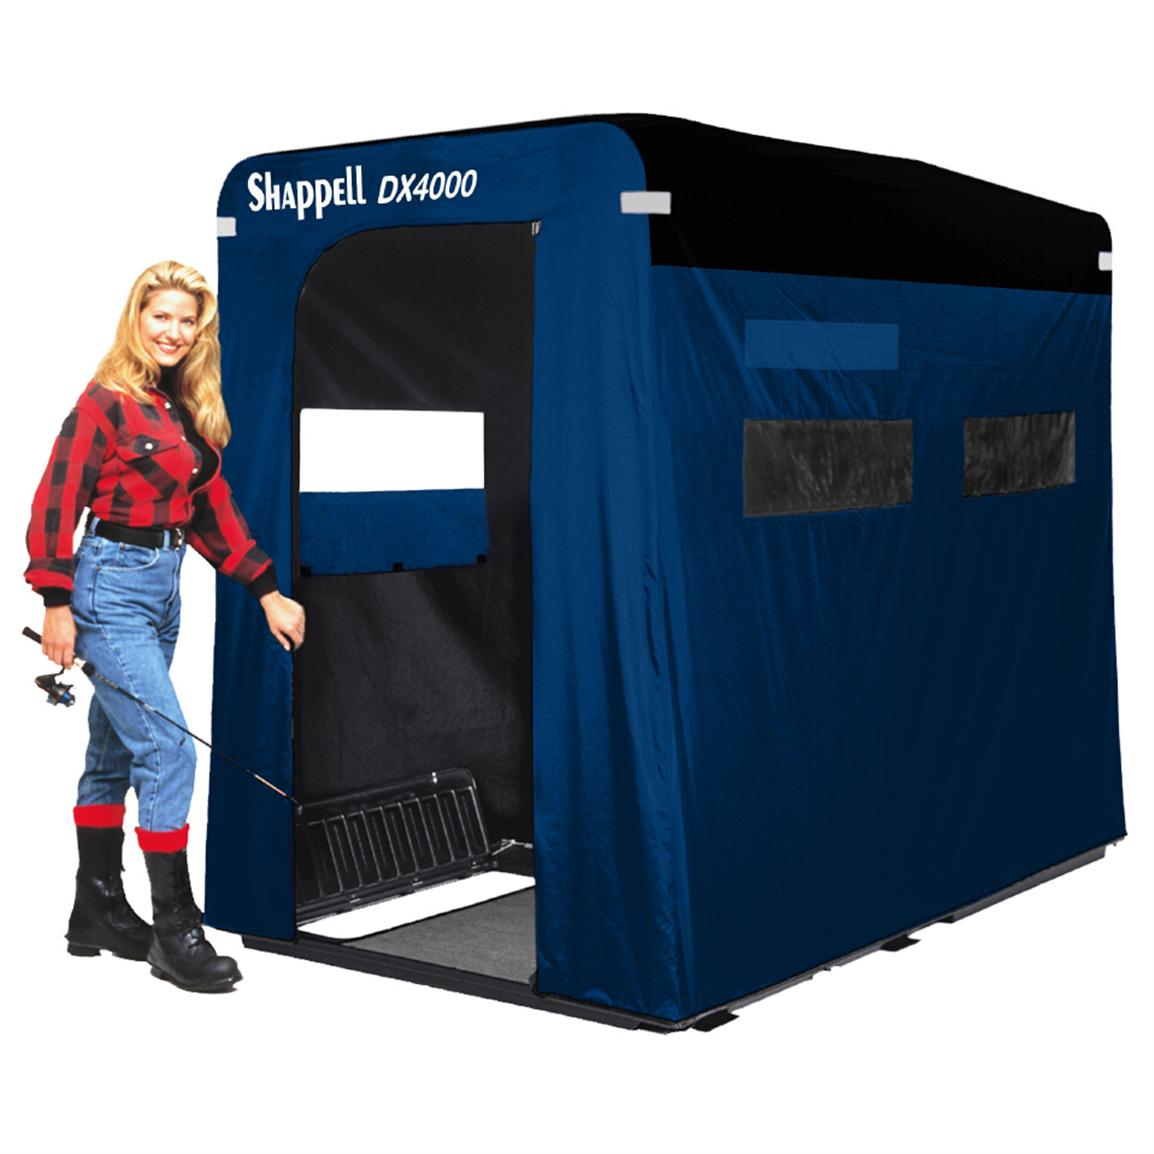 Shappell® DX4000 Ice Shelter